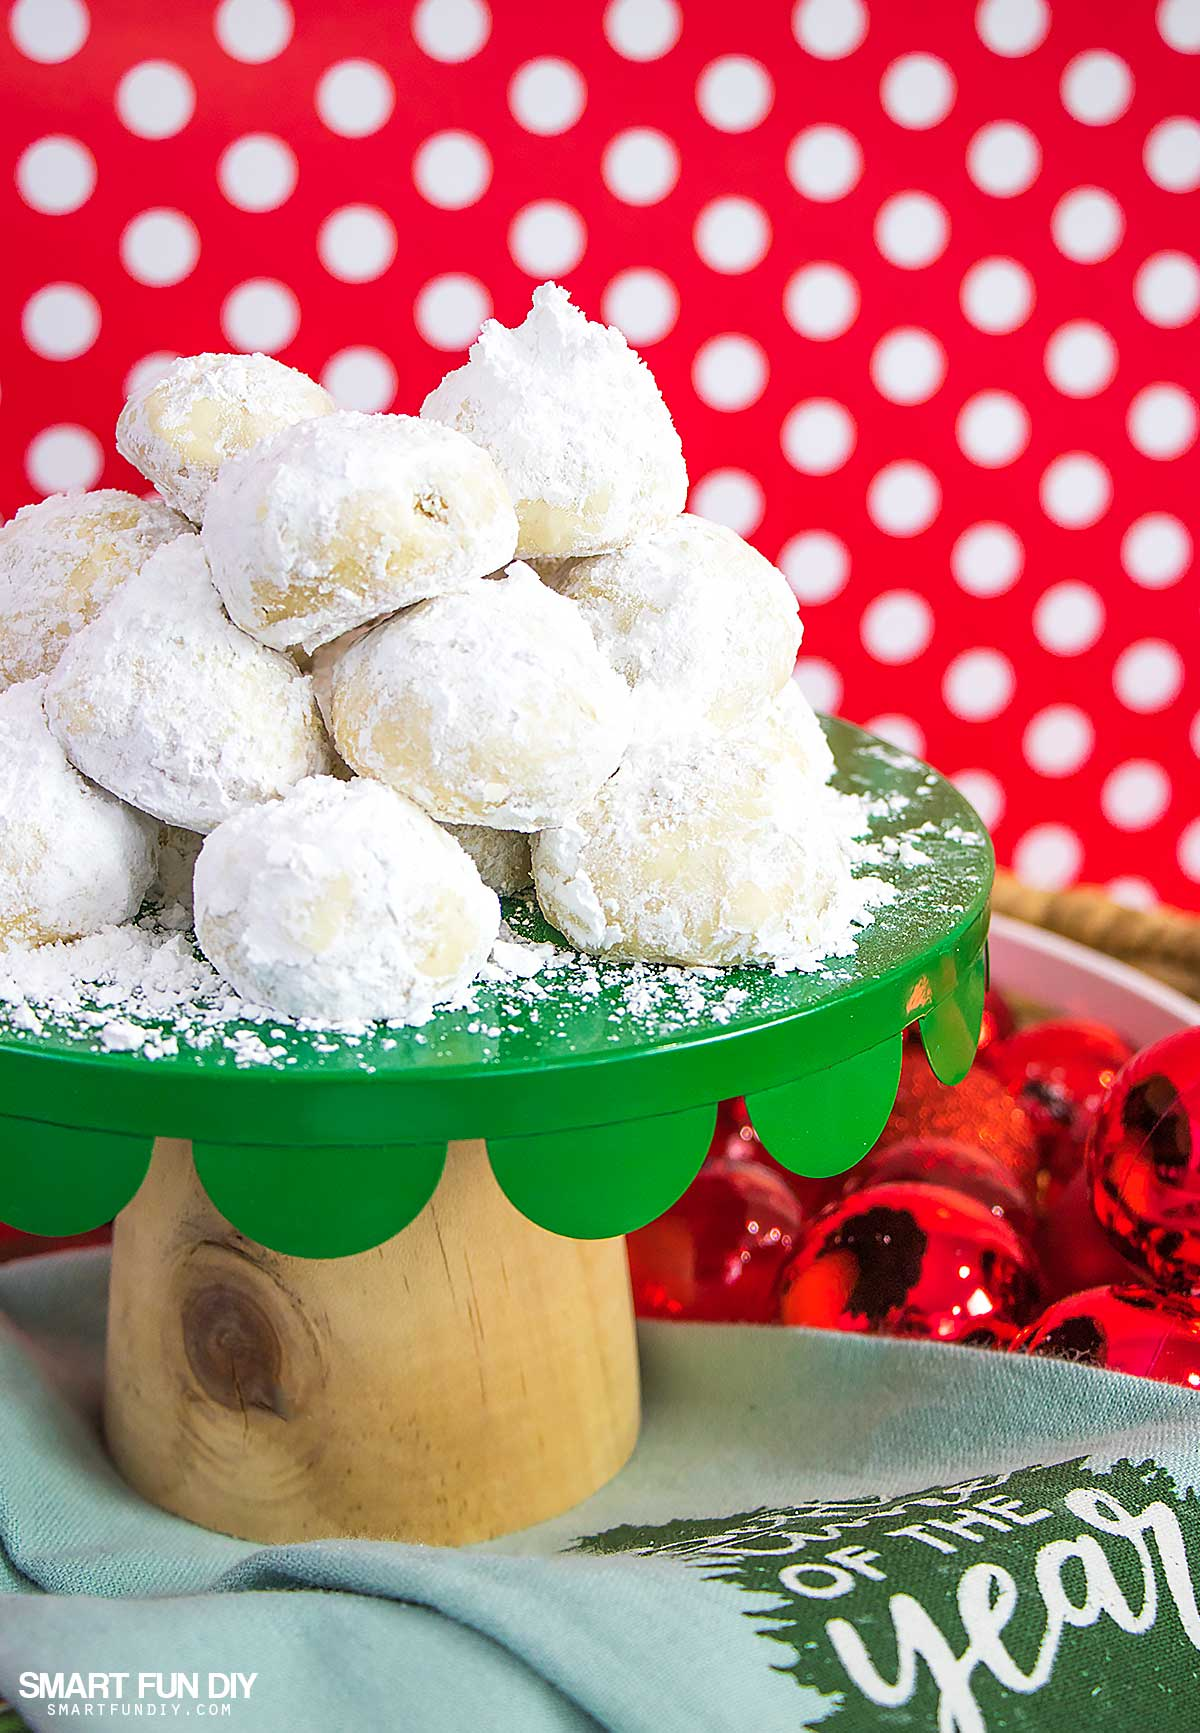 Mexican Wedding Cakes Recipe Or Russian Tea Cakes Cookies